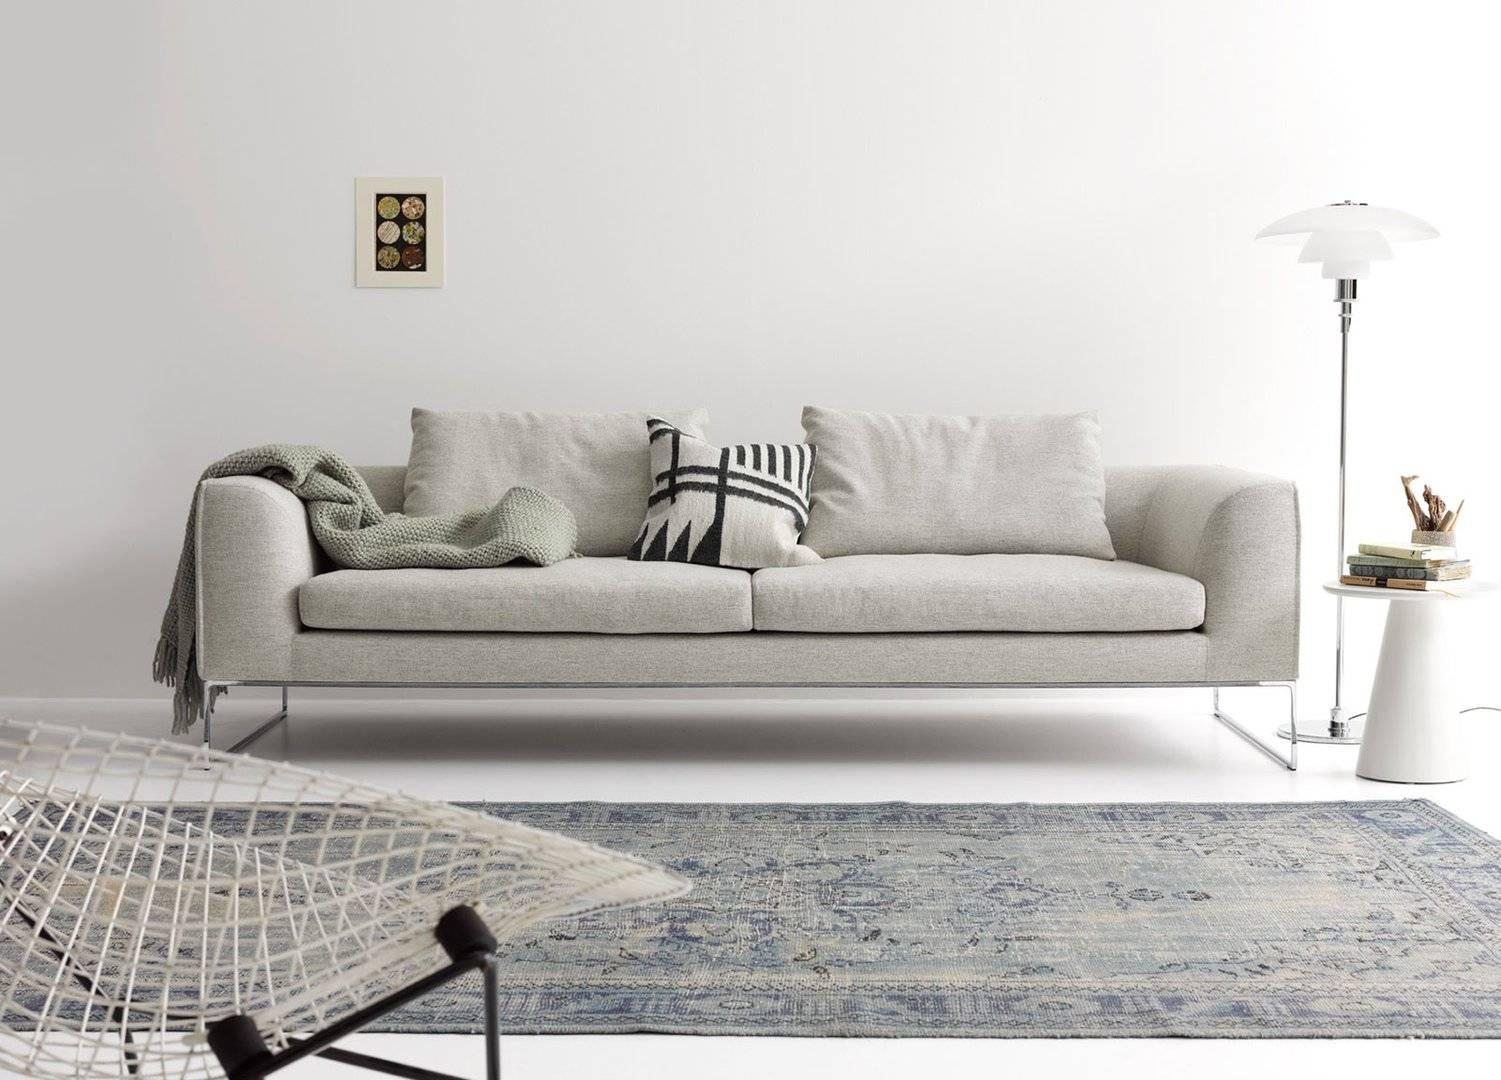 Mel Lounge Sofa With Seat Cushion By COR. Design By Jehs U0026 Laub. Mell